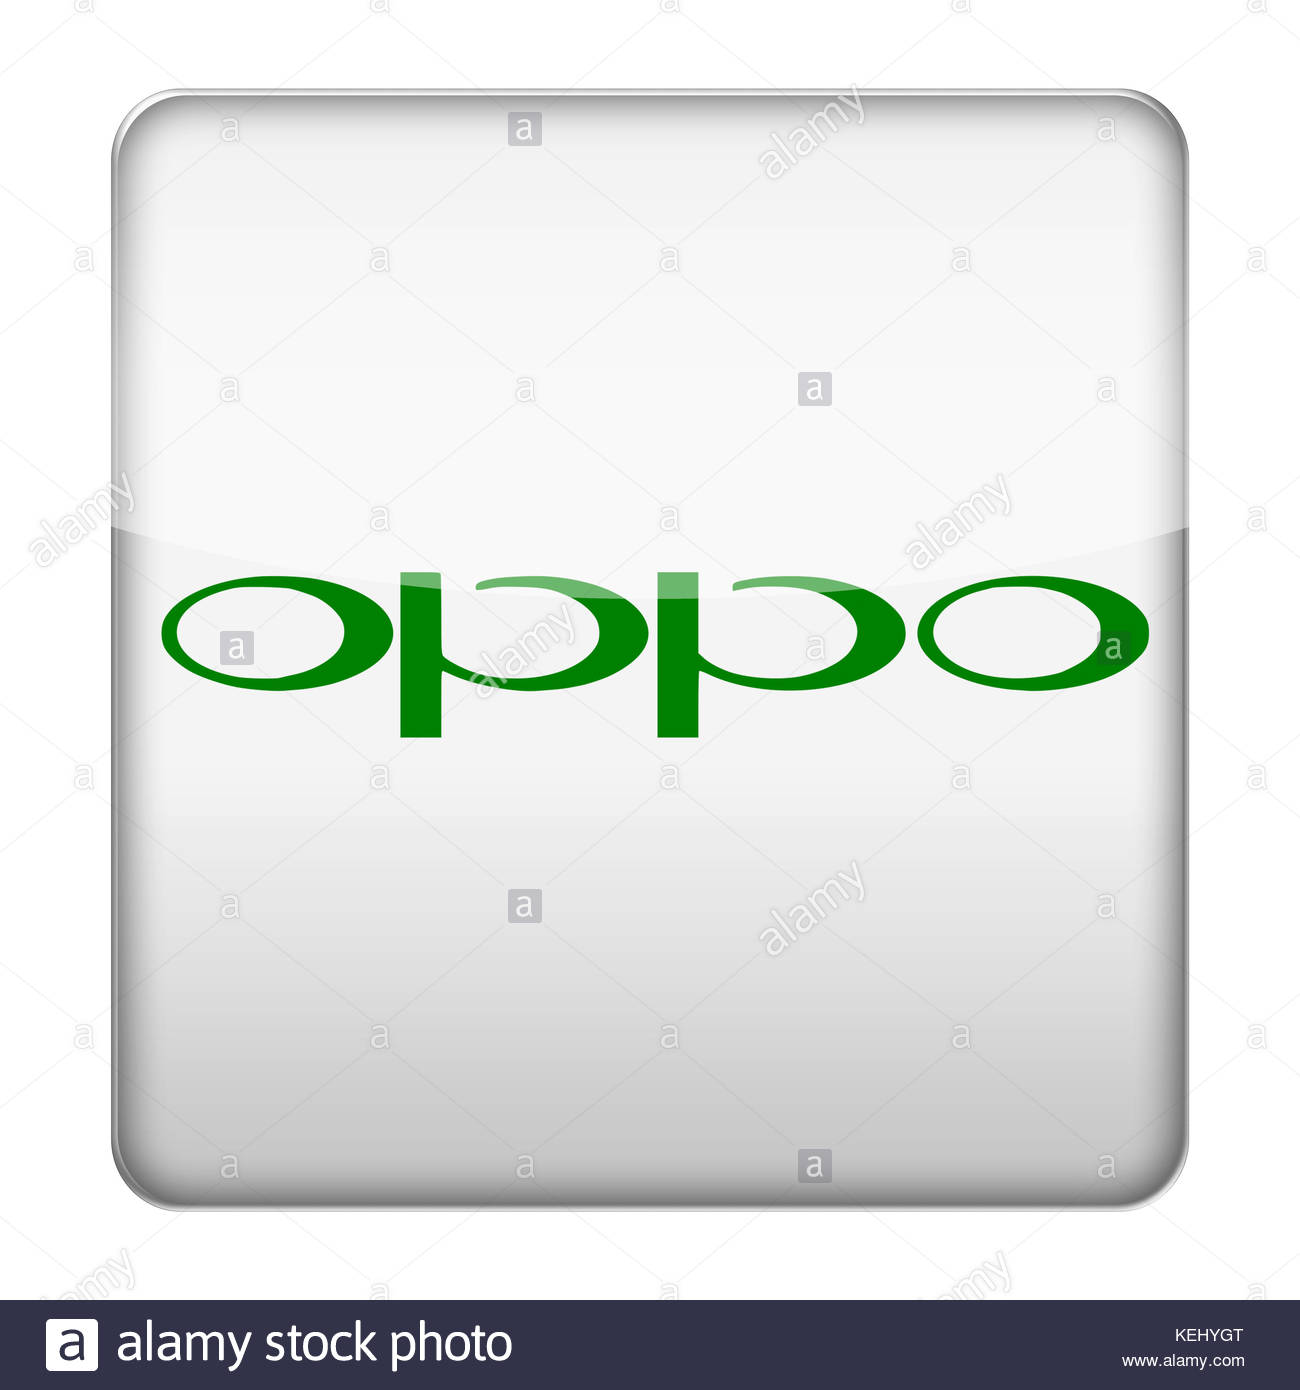 Oppo electronics logo icon button - Stock Image